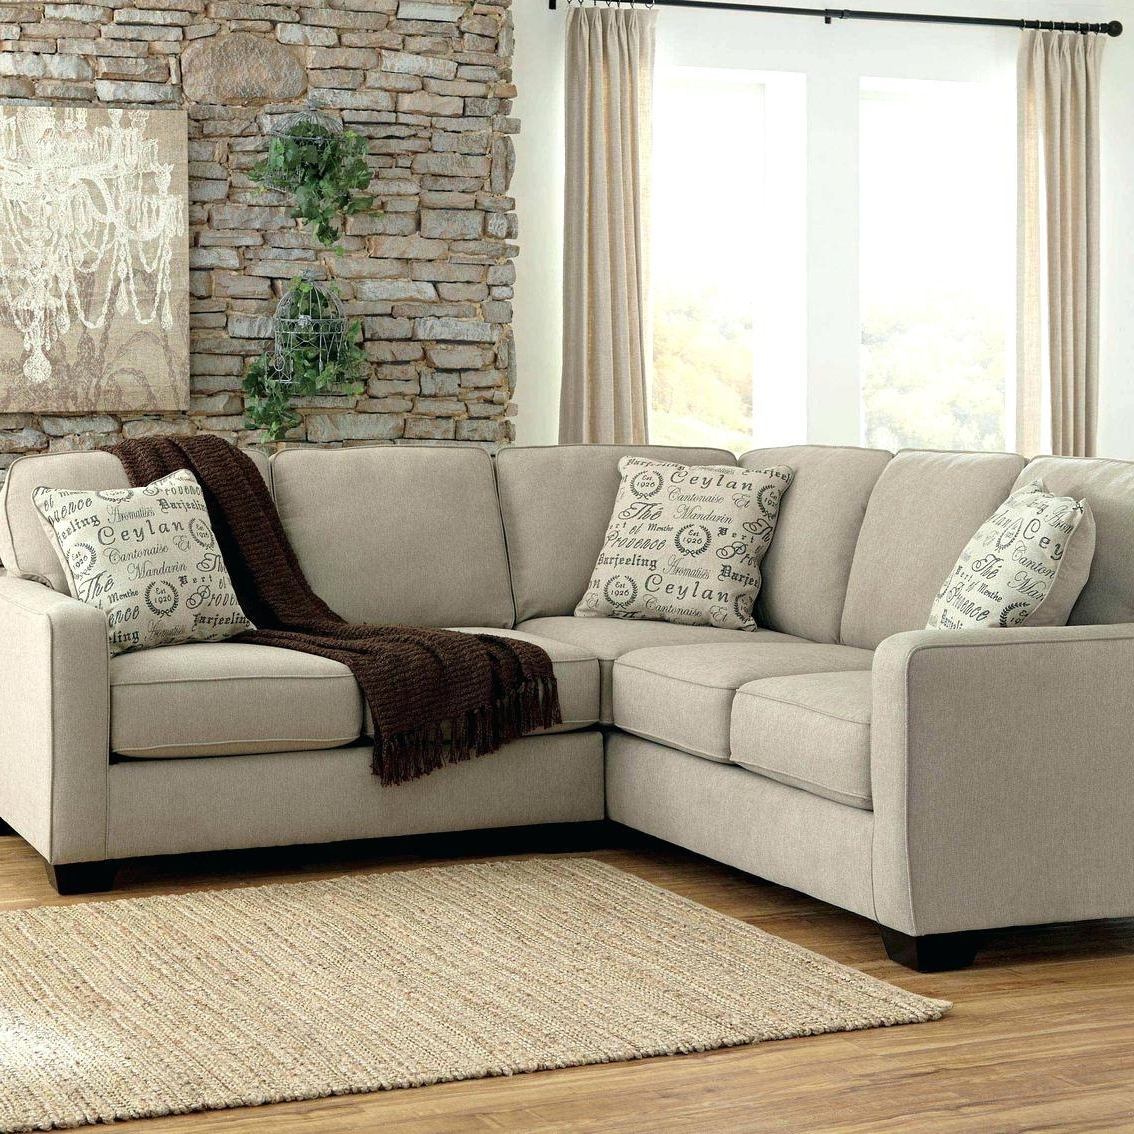 Well Known Sectional Sofas Under 700 In Cheap Sectional Sofa Sofas Under 700 Dollars Sectionals Near Me (View 3 of 15)